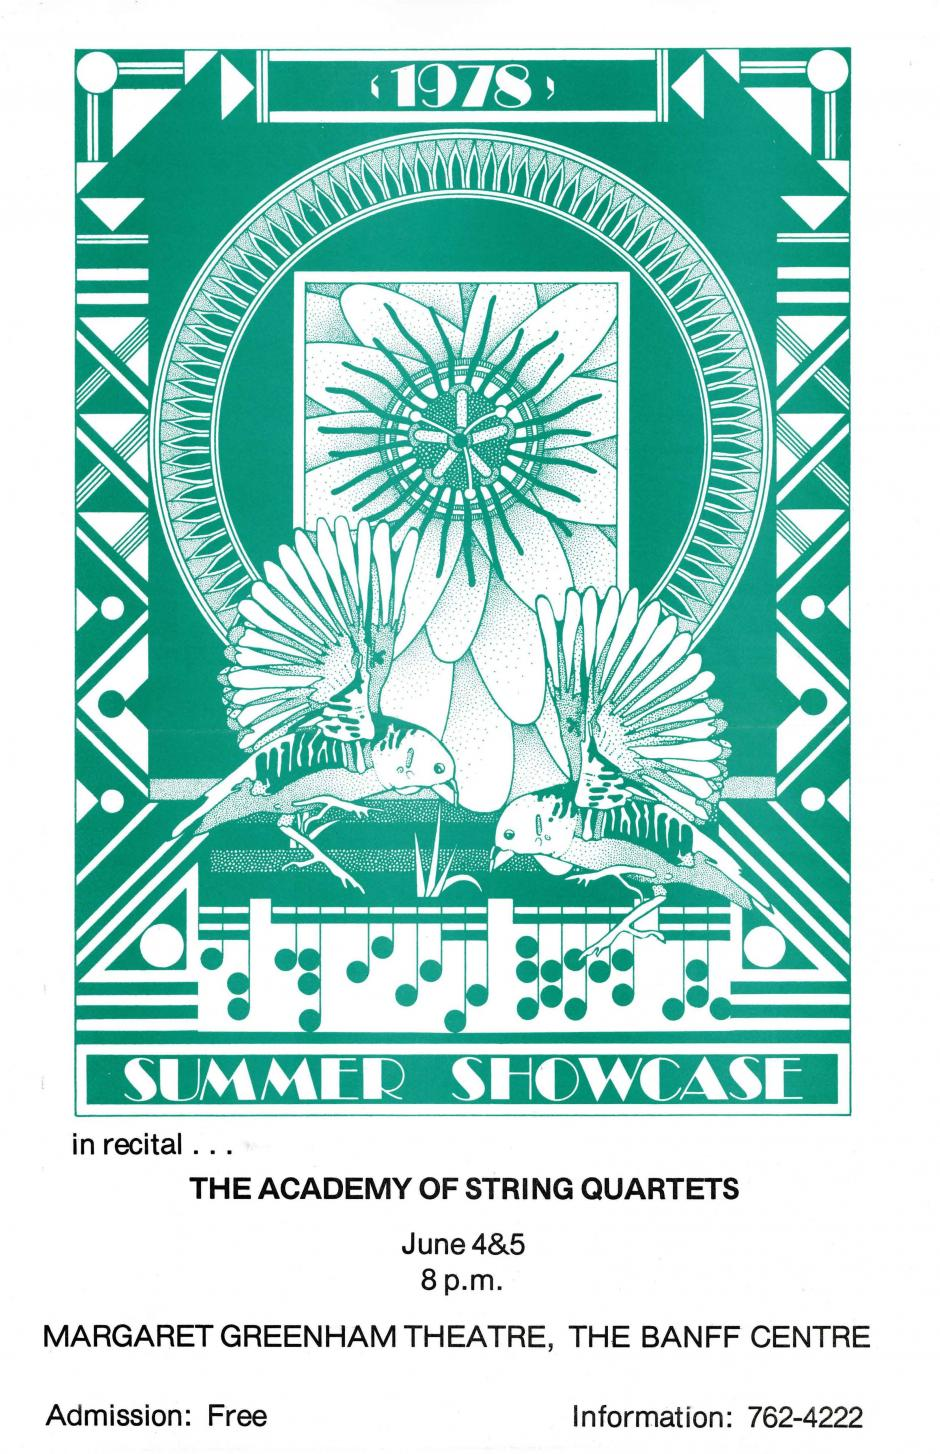 A poster for The Academy of String Quartets Summer Showcase featuring geometric shapes and birds